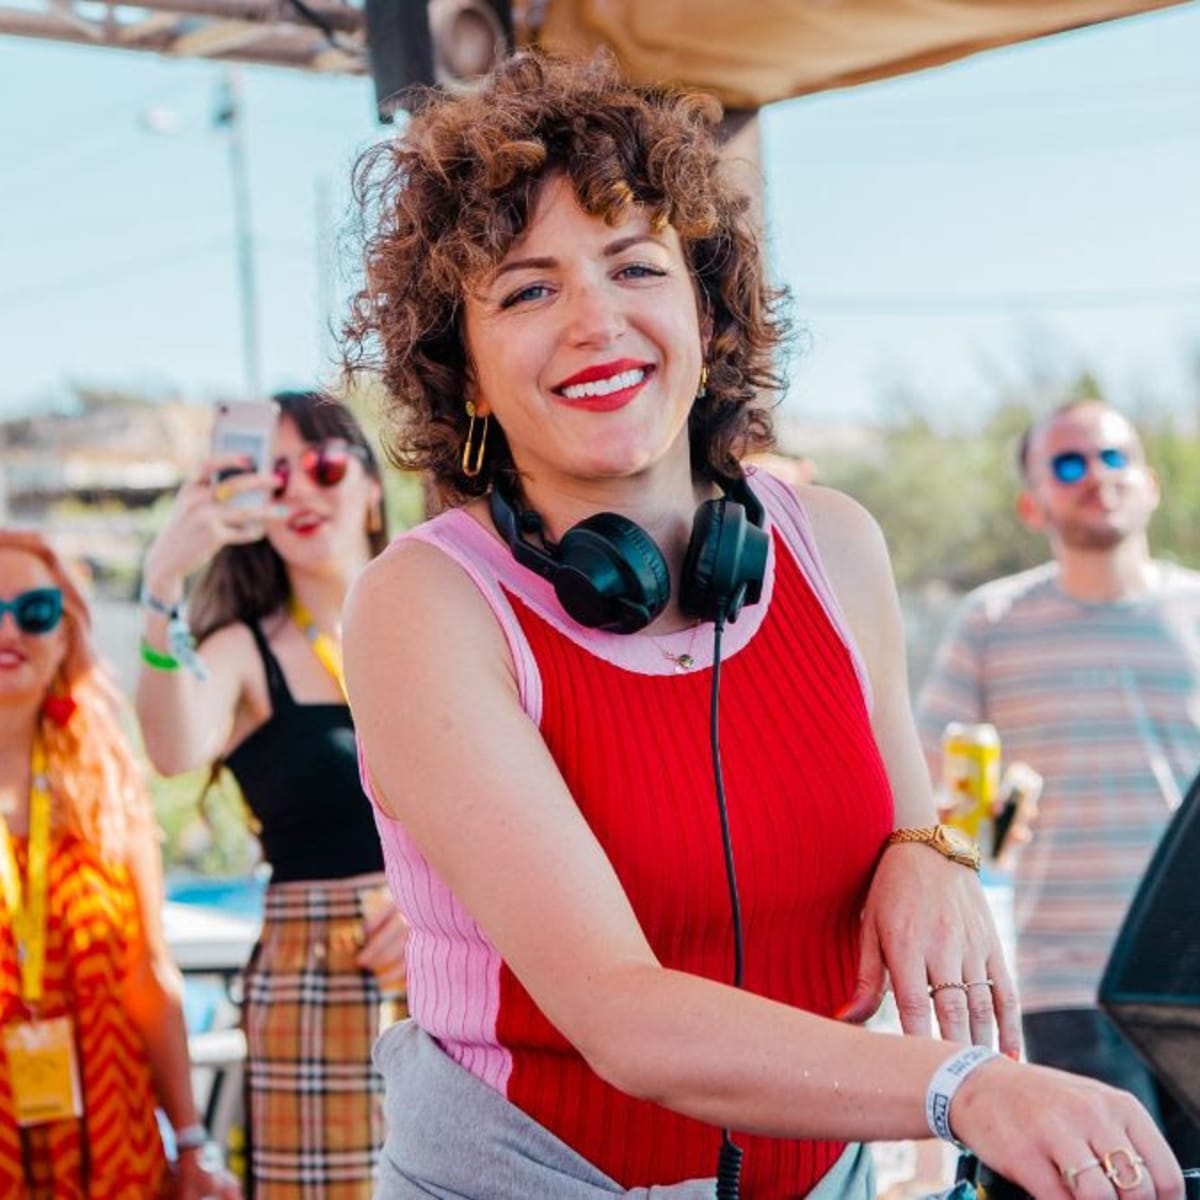 Annie Mac Delivered Her Last Show On BBC Radio 1 This Weekend